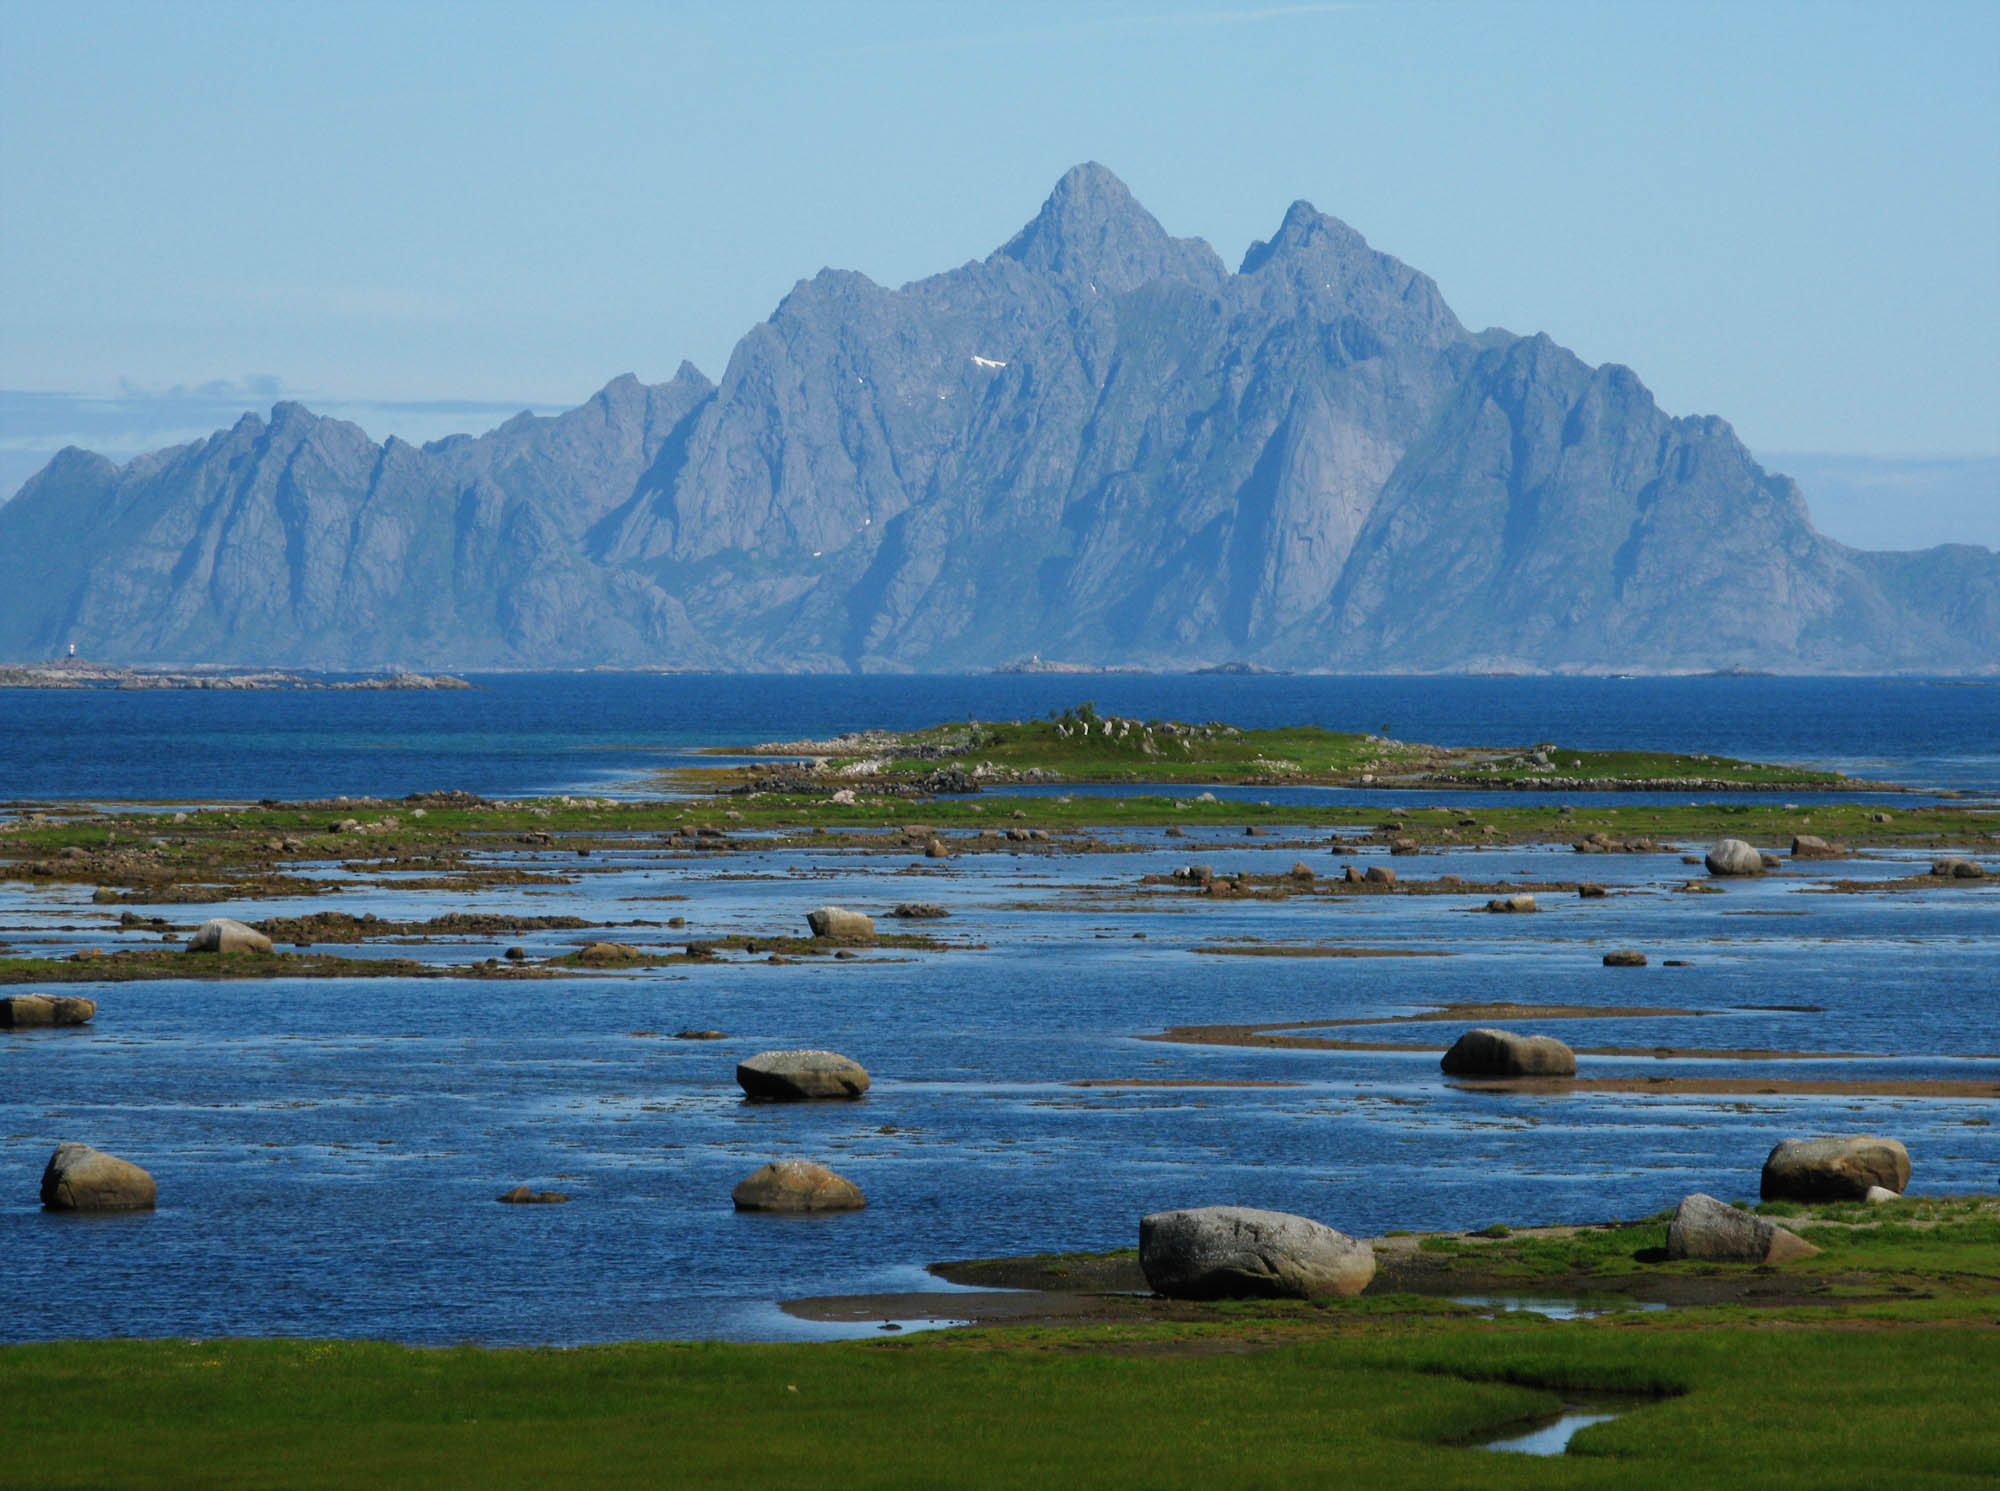 norwegen-lofoten-blaue-berge-small